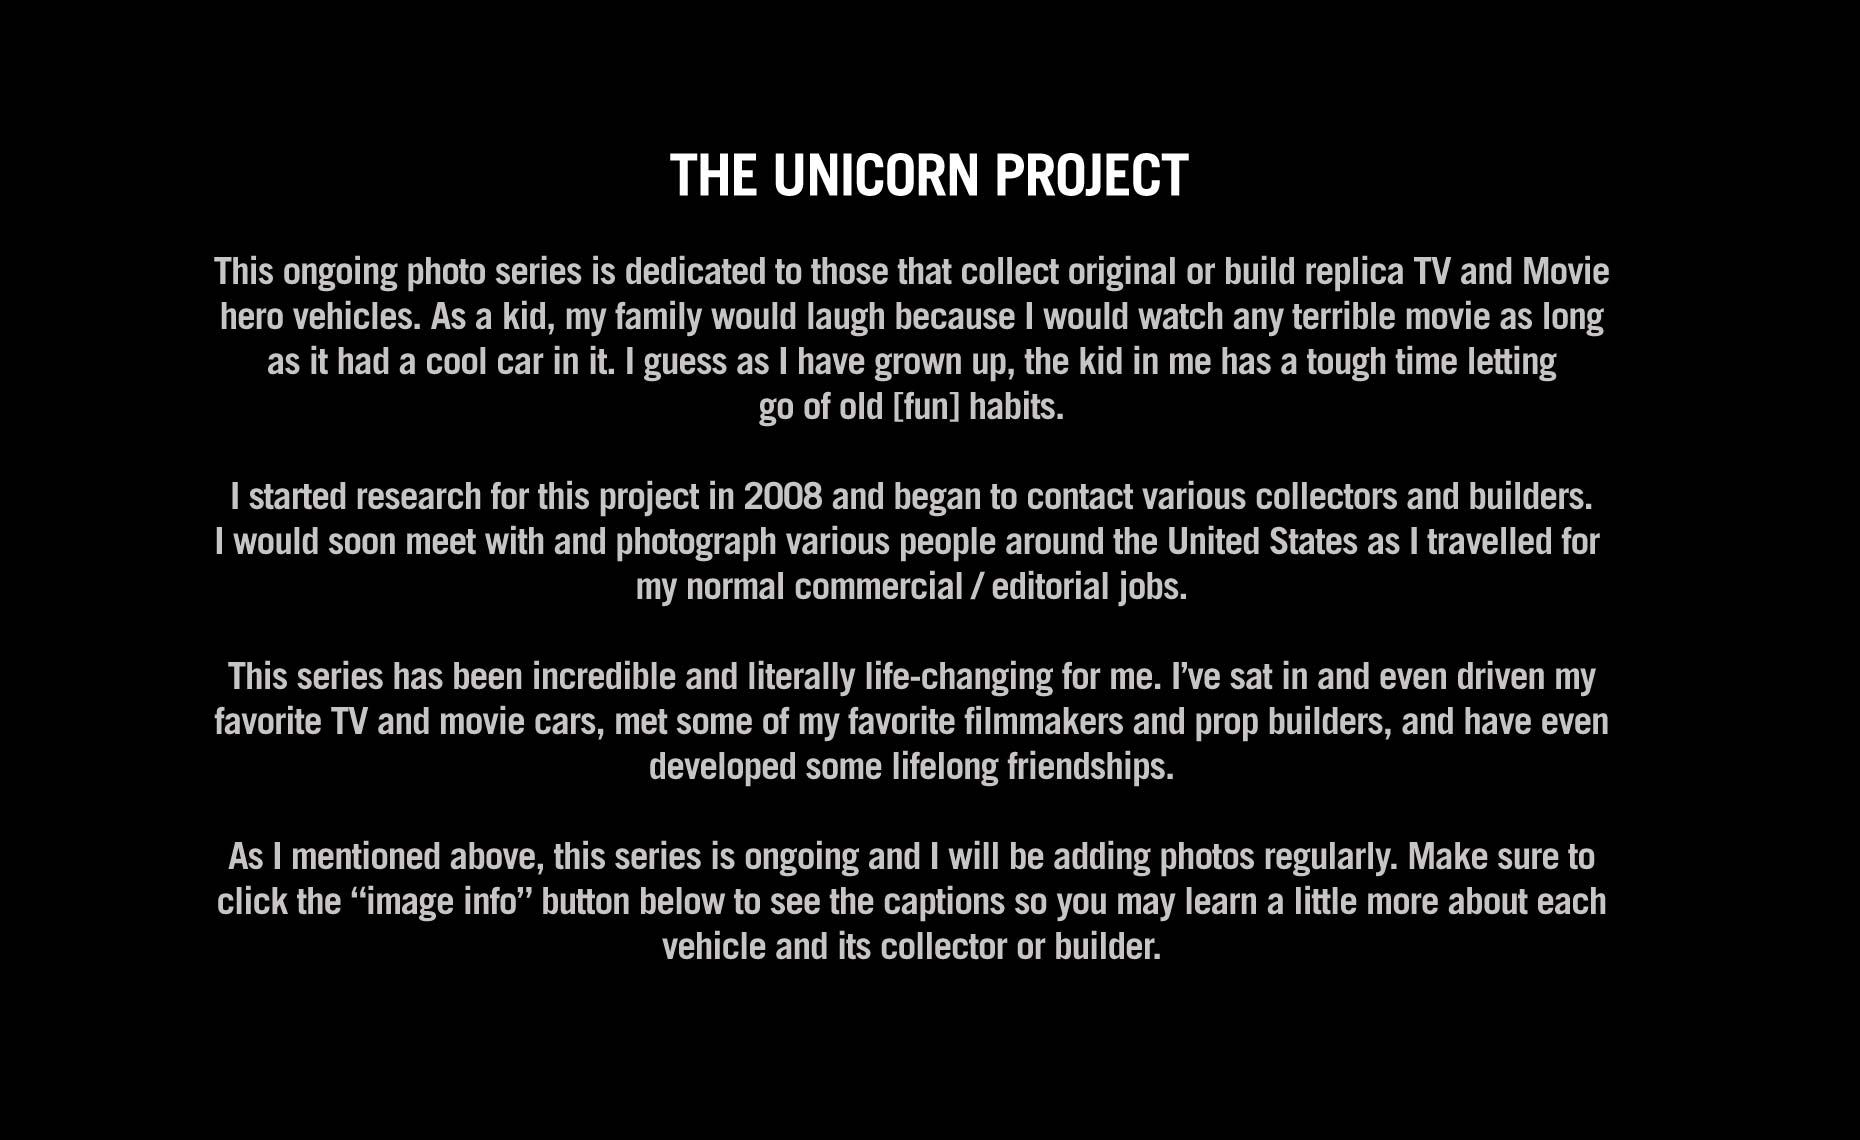 unicornprojectdescription2.jpg